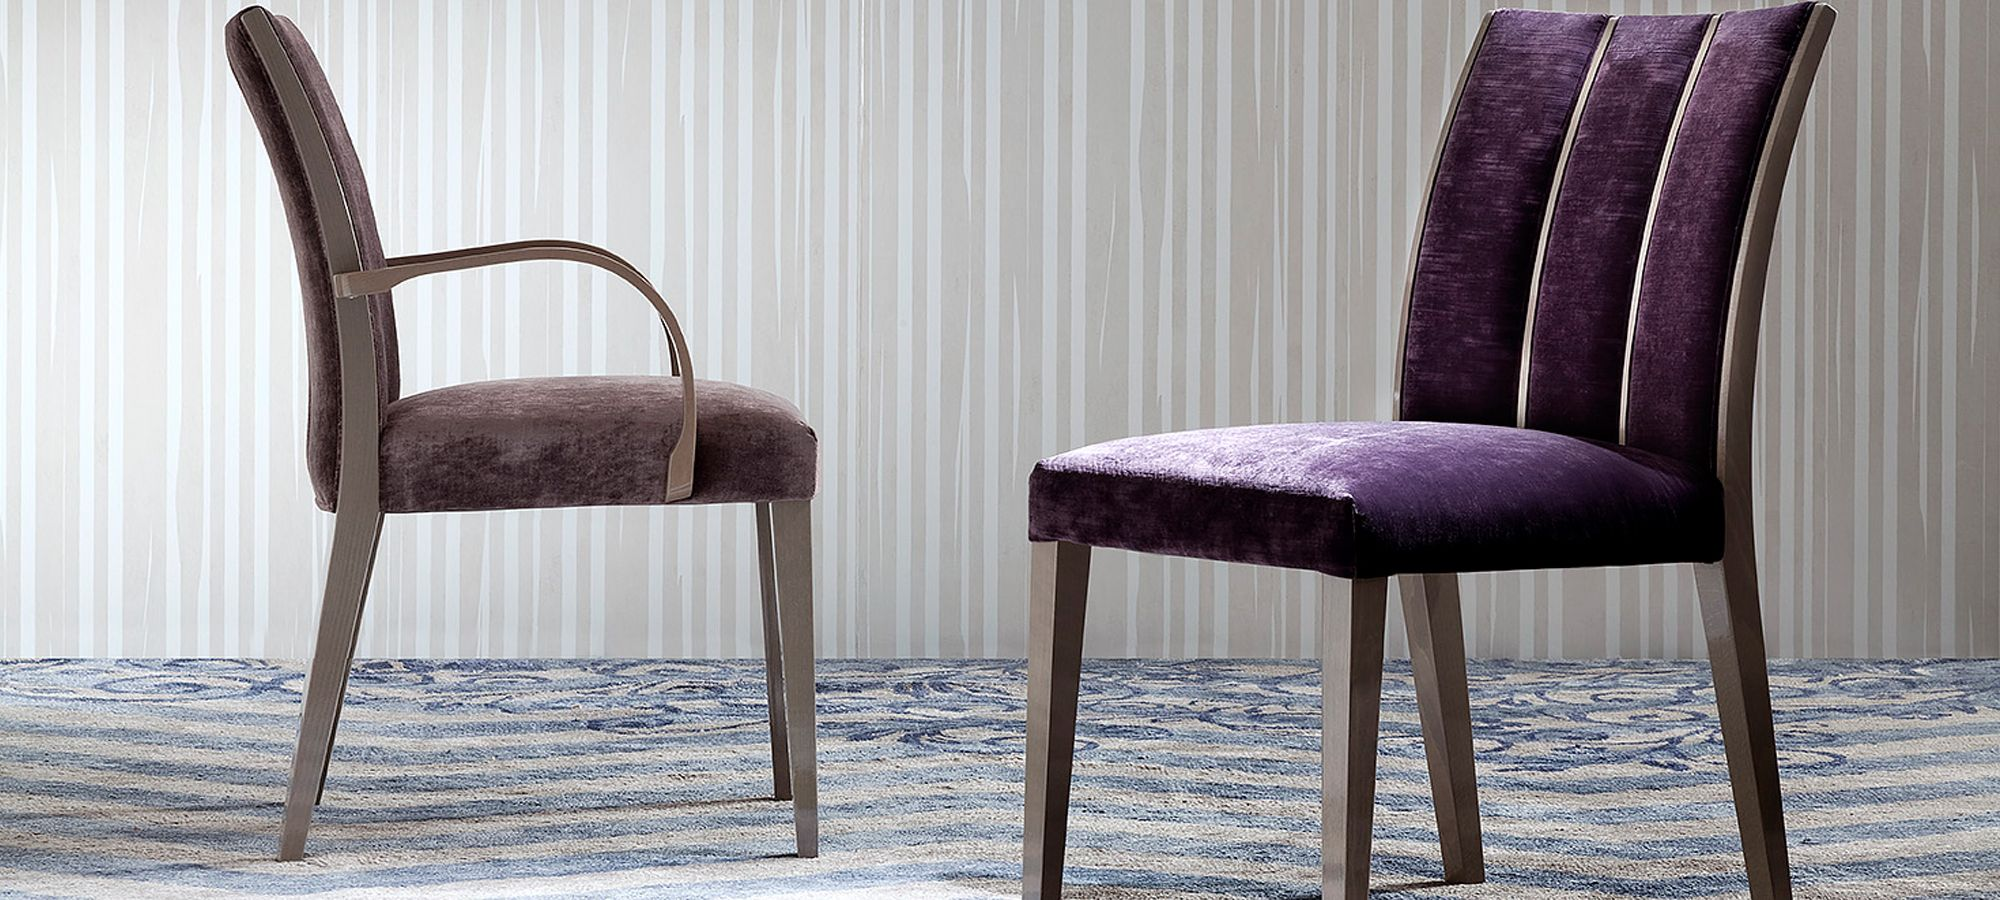 Pietro Costantini Indigo Chairs Ww Casarredo Co Za With Images